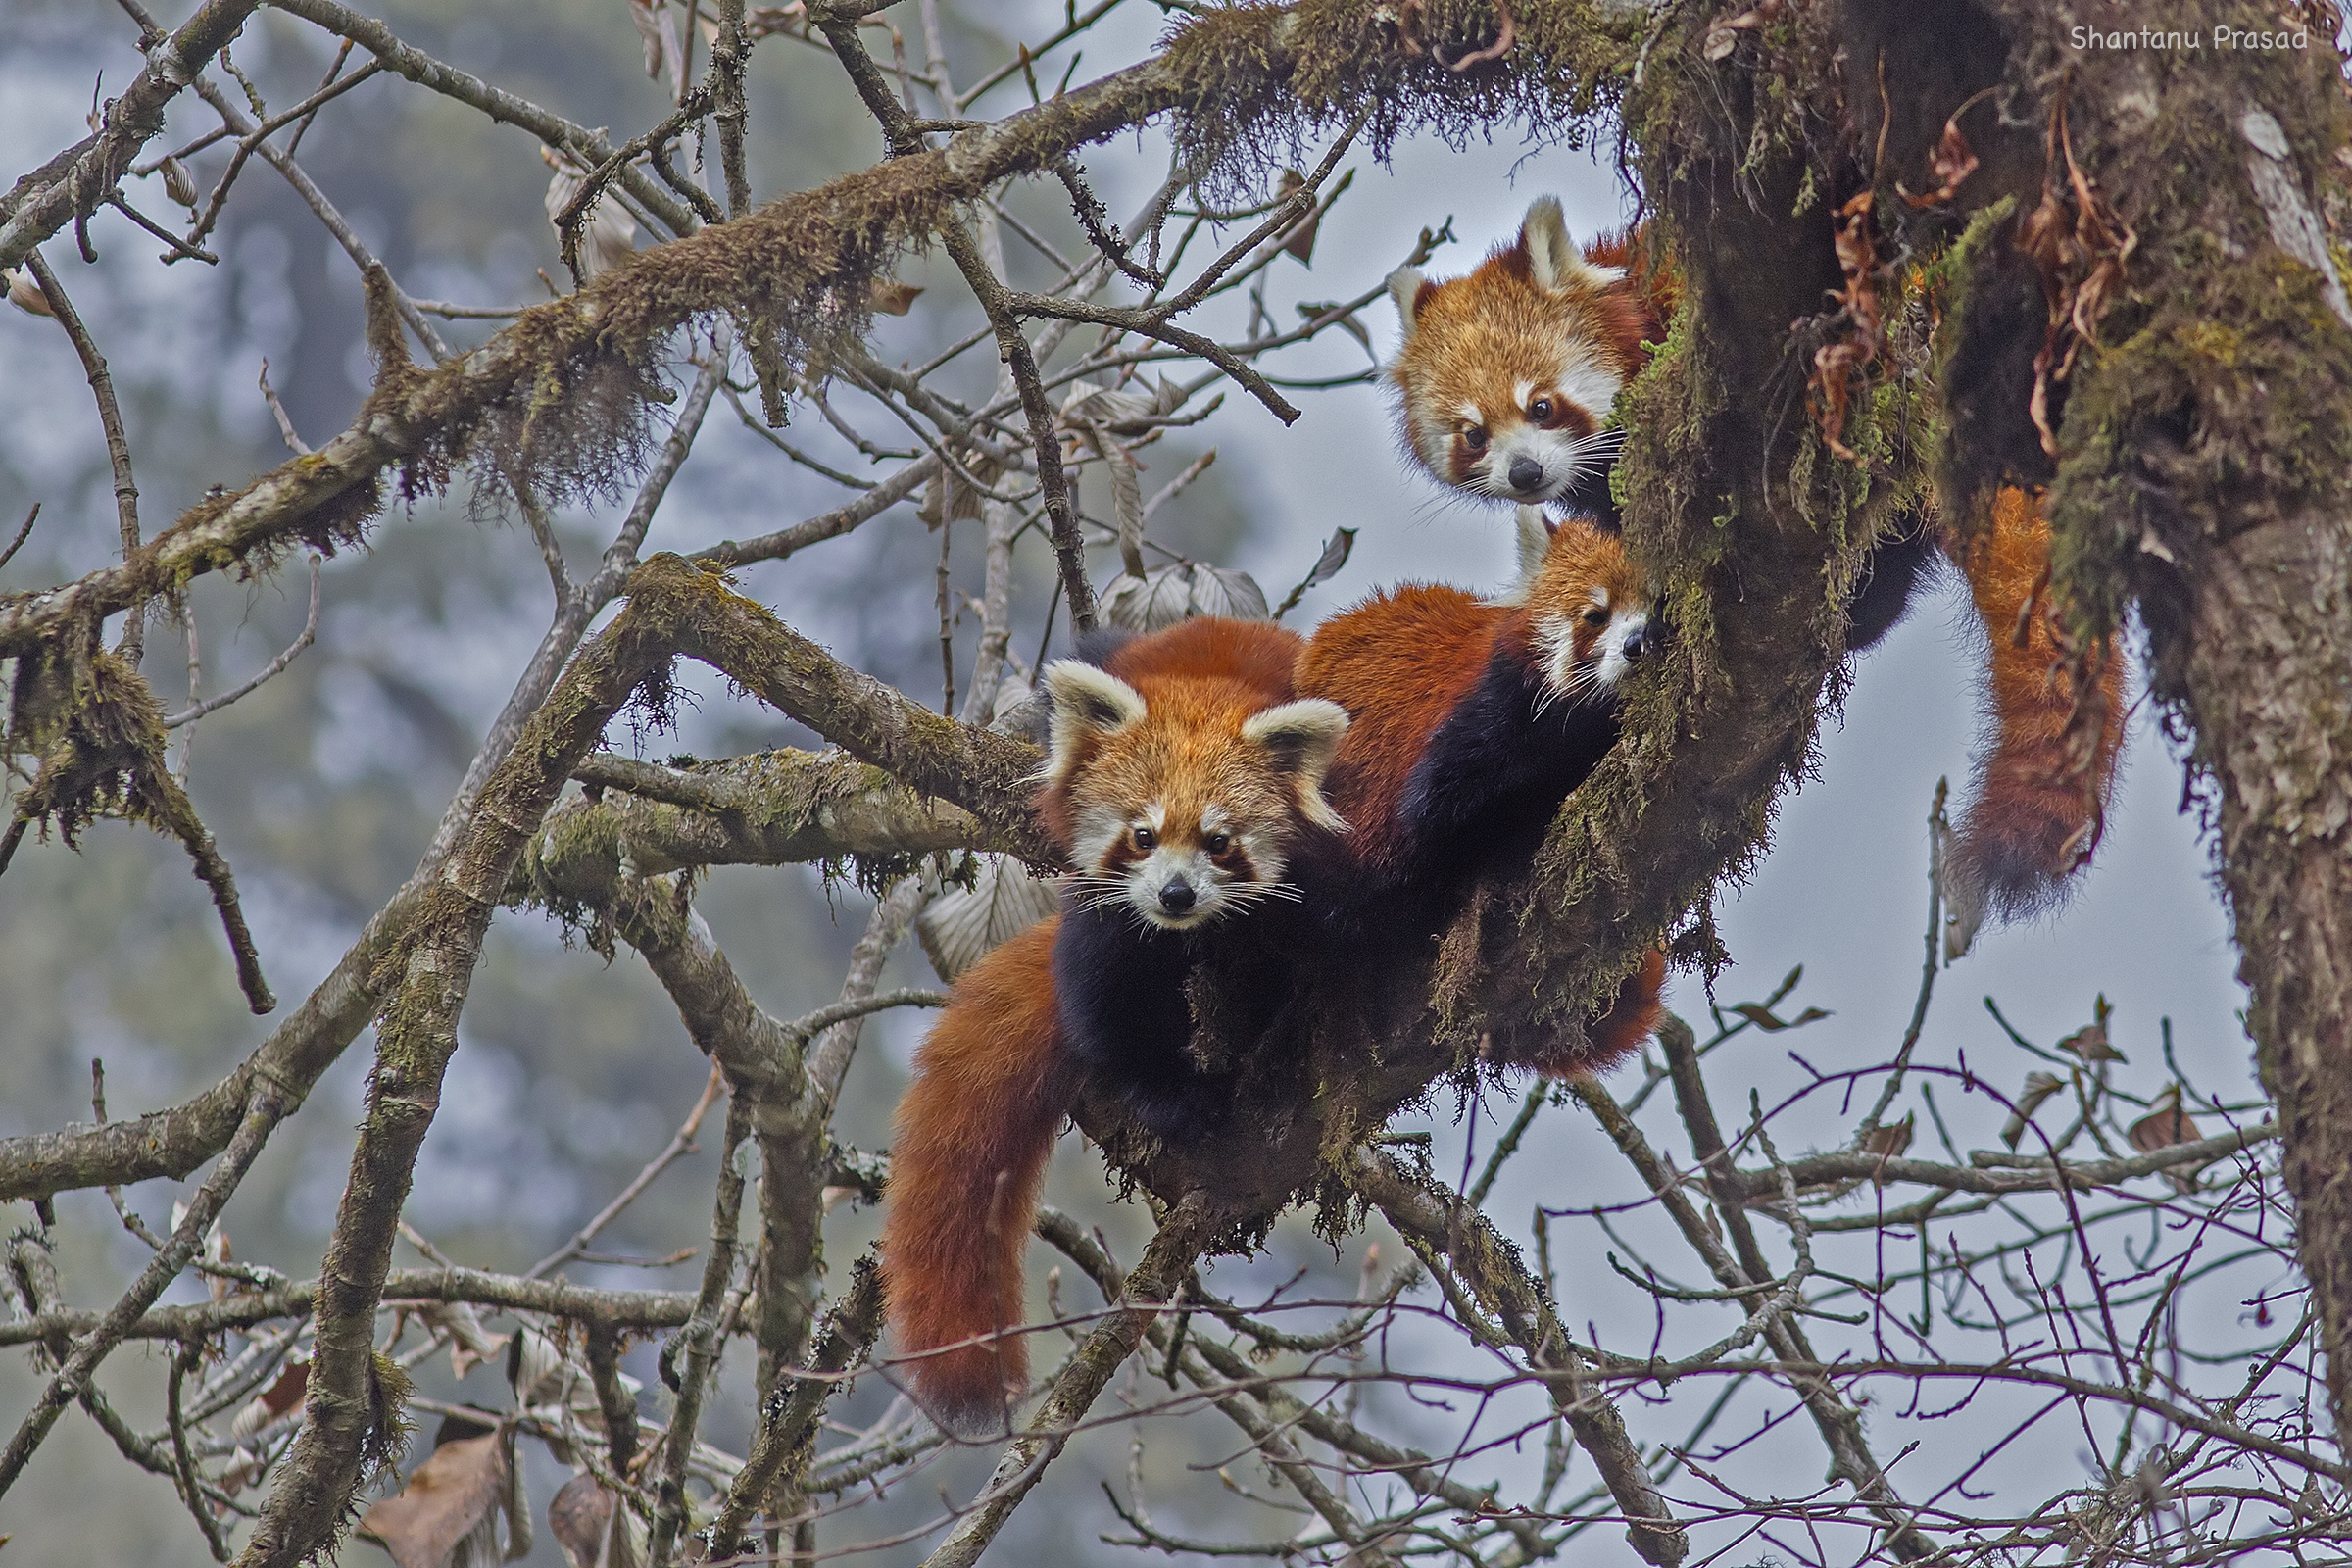 Red Panda : A Family of Red Pandas – a more endearing site one cannot hope to witness.